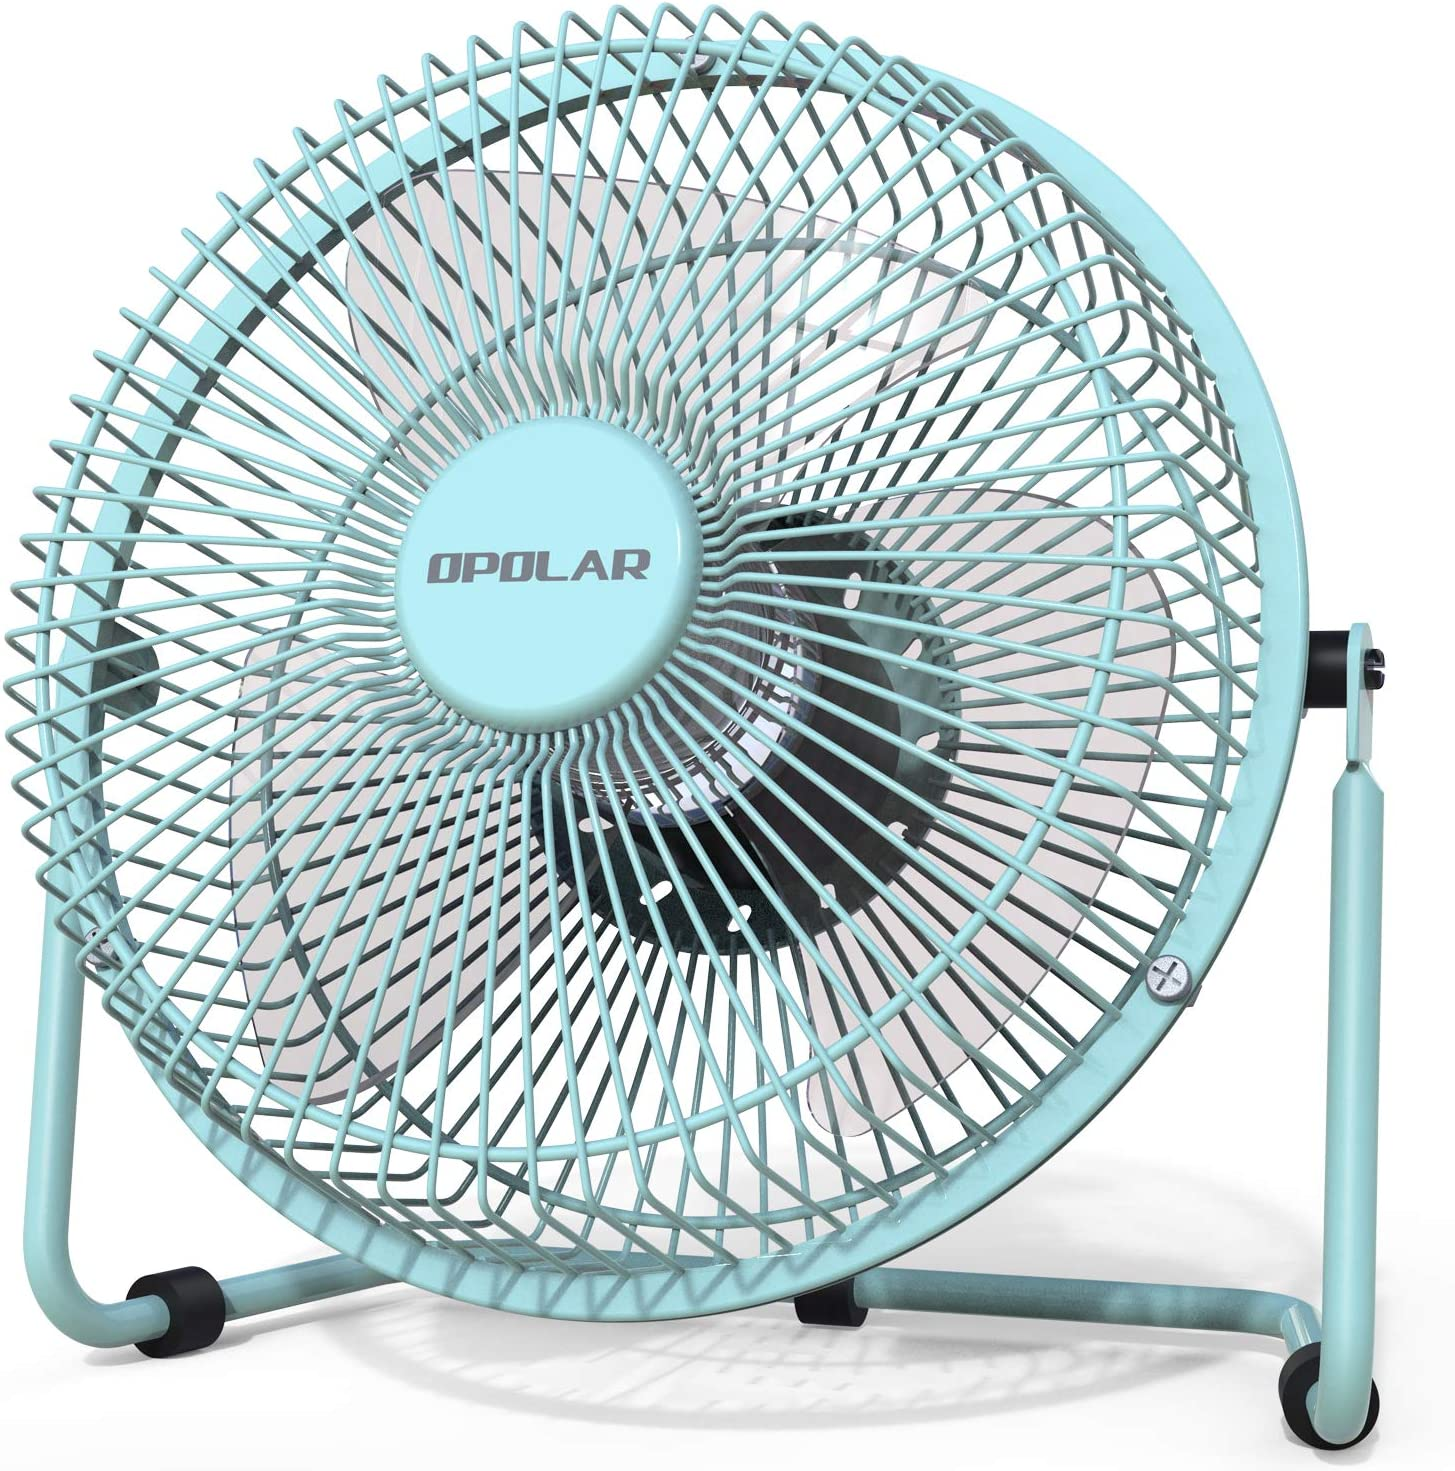 USB Table Desk Personal Fan 6 Inch USB Fan Office Desktop Bedroom Bedside Student Dormitory Silent Small Mini Fan for Home Office Table Color : Green, Size : One-Size